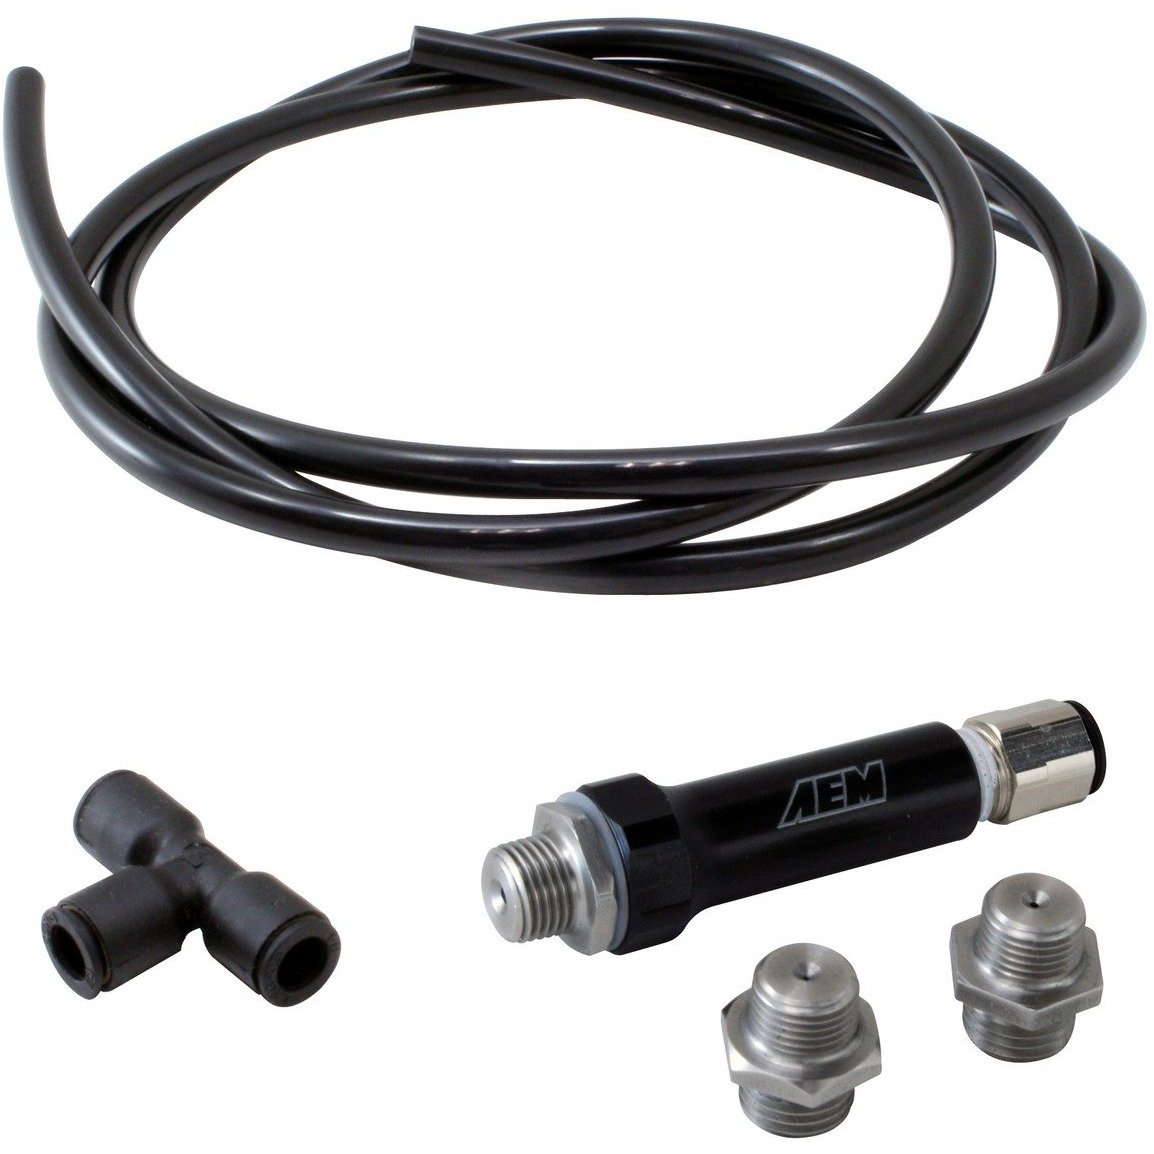 AEM 30-3312 - V2 WATER/METHANOL INJECTION NOZZLE & JET KIT,  WATER/METHANOL,  AEM,  Dark Road Performance - Dark Road Performance Ltd